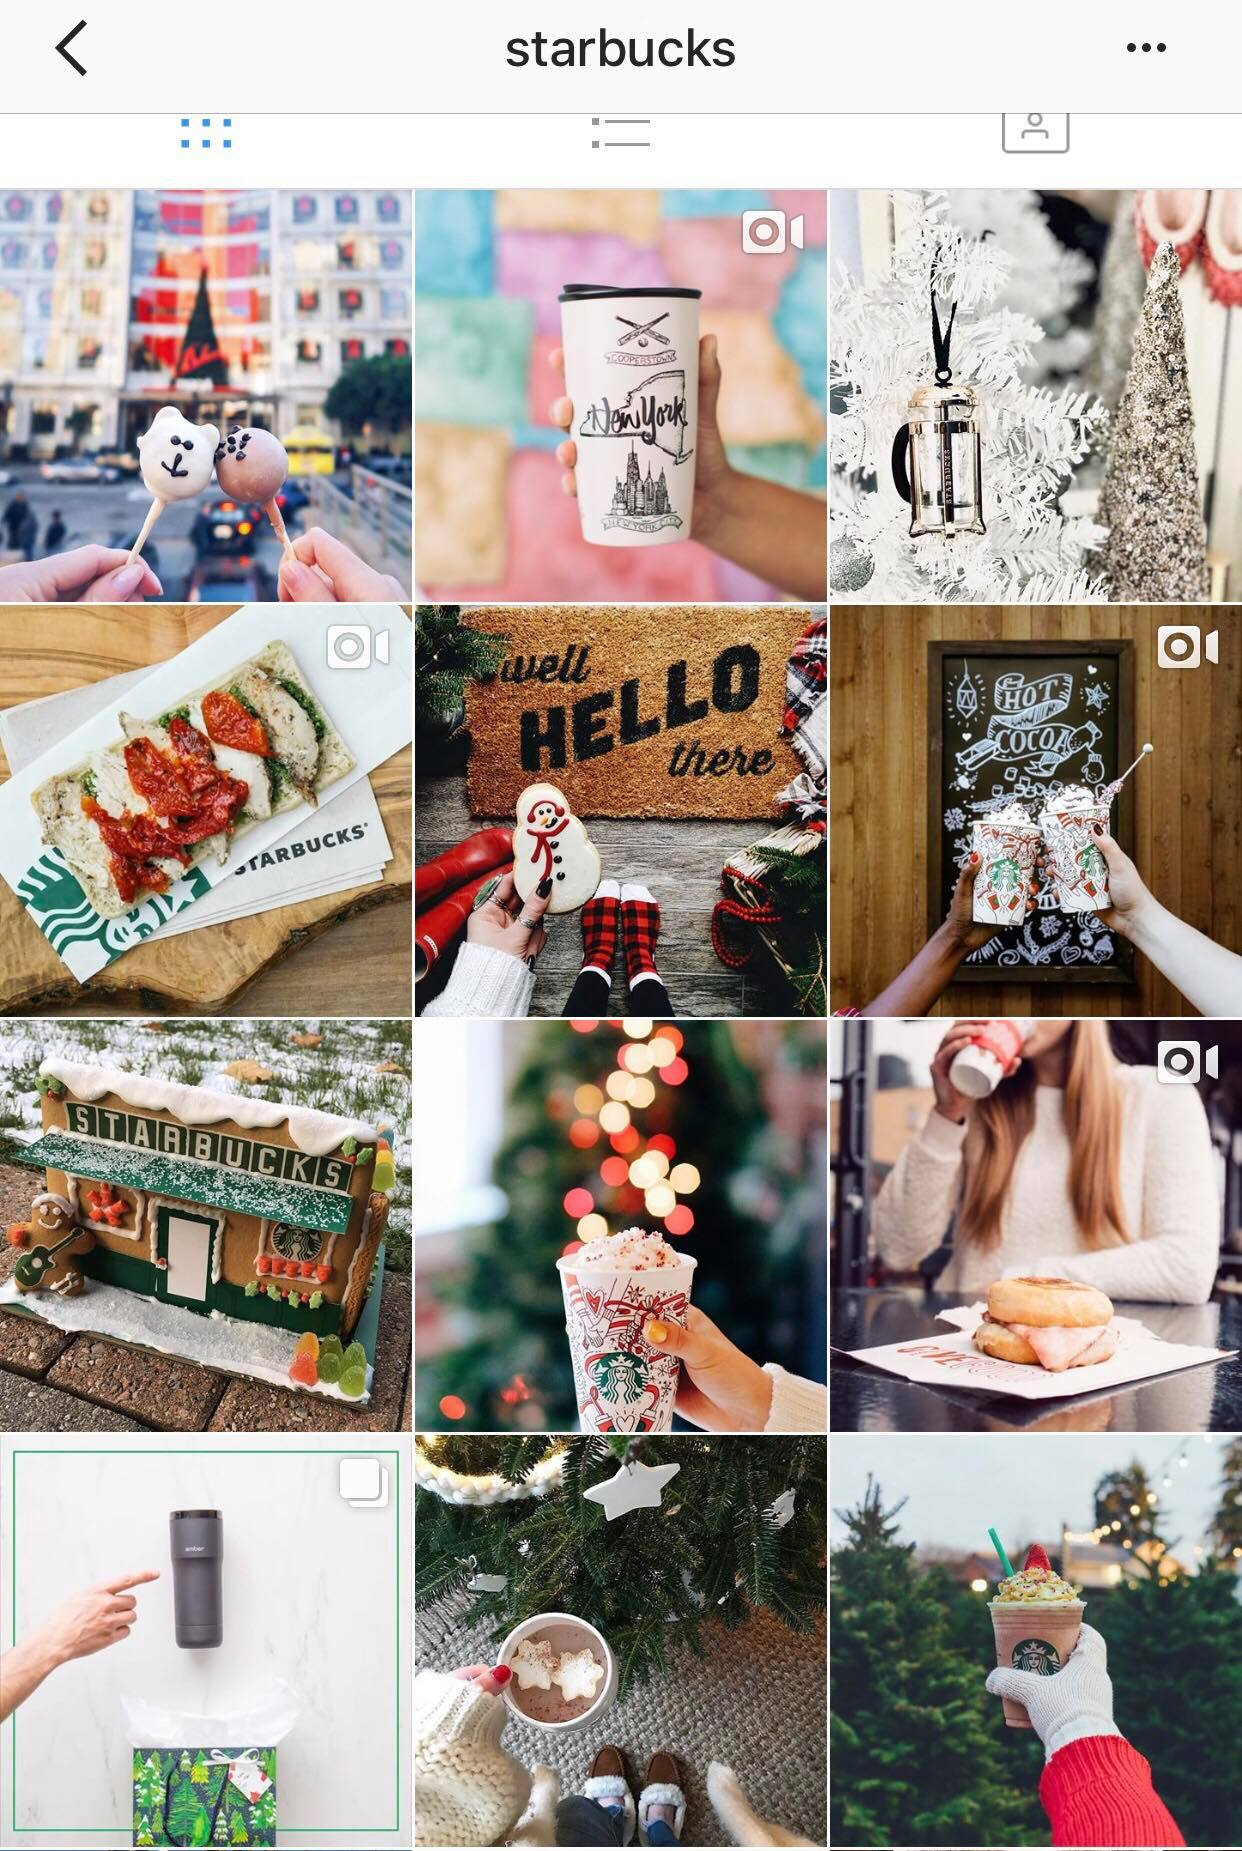 Starbucks Instagram feed Best practices for reposting user-generated content